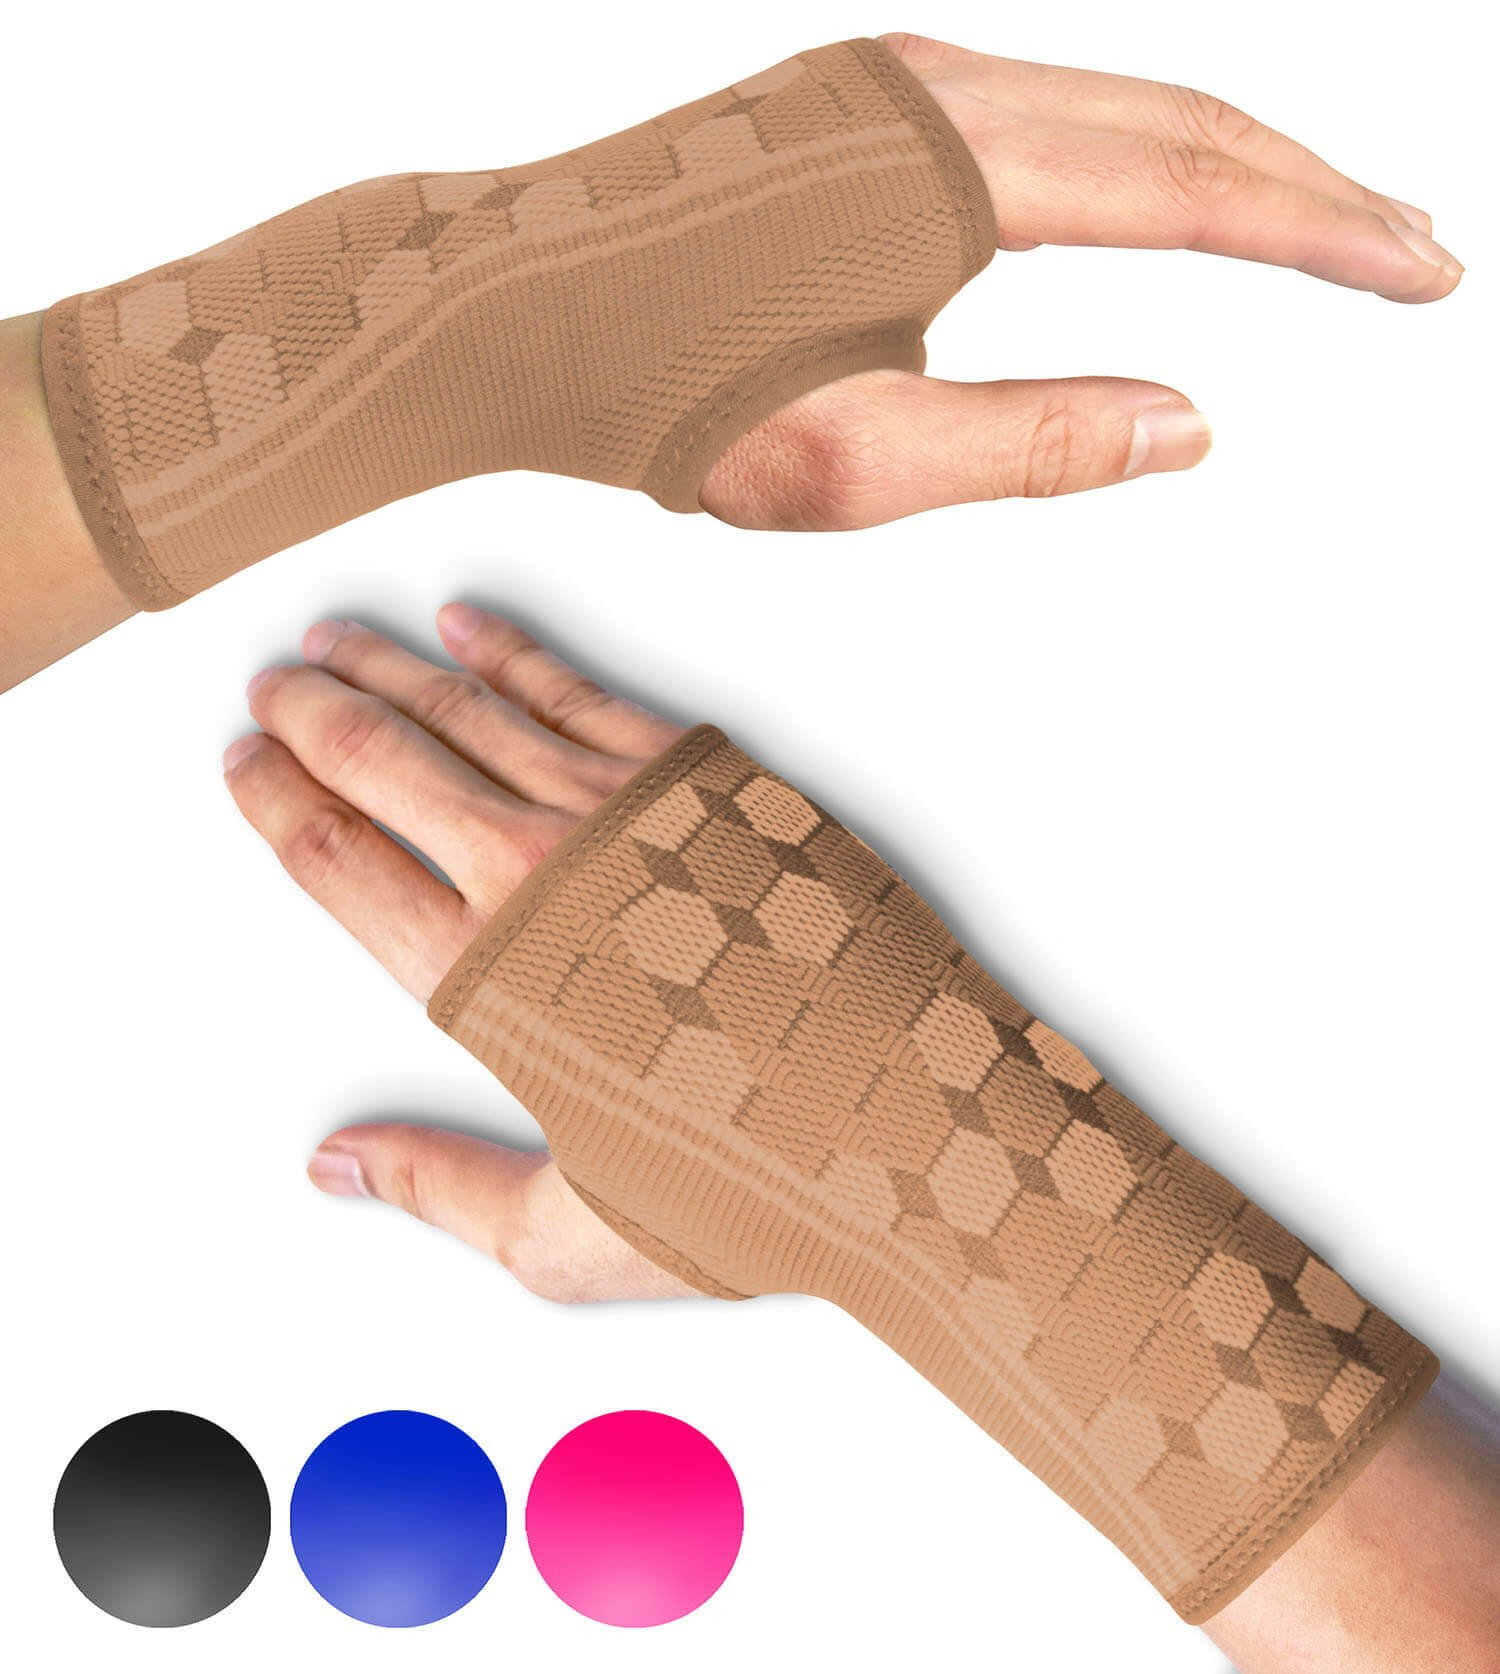 Sparthos Wrist Support Sleeves (Pair) - Compression Wrist Brace for Men and Women - Carpal Tunnel Tendonitis Arthritis Pain Relief for Sports Injuries Arthritic Wrists Palm Hand Pain RSI (Beige-M)